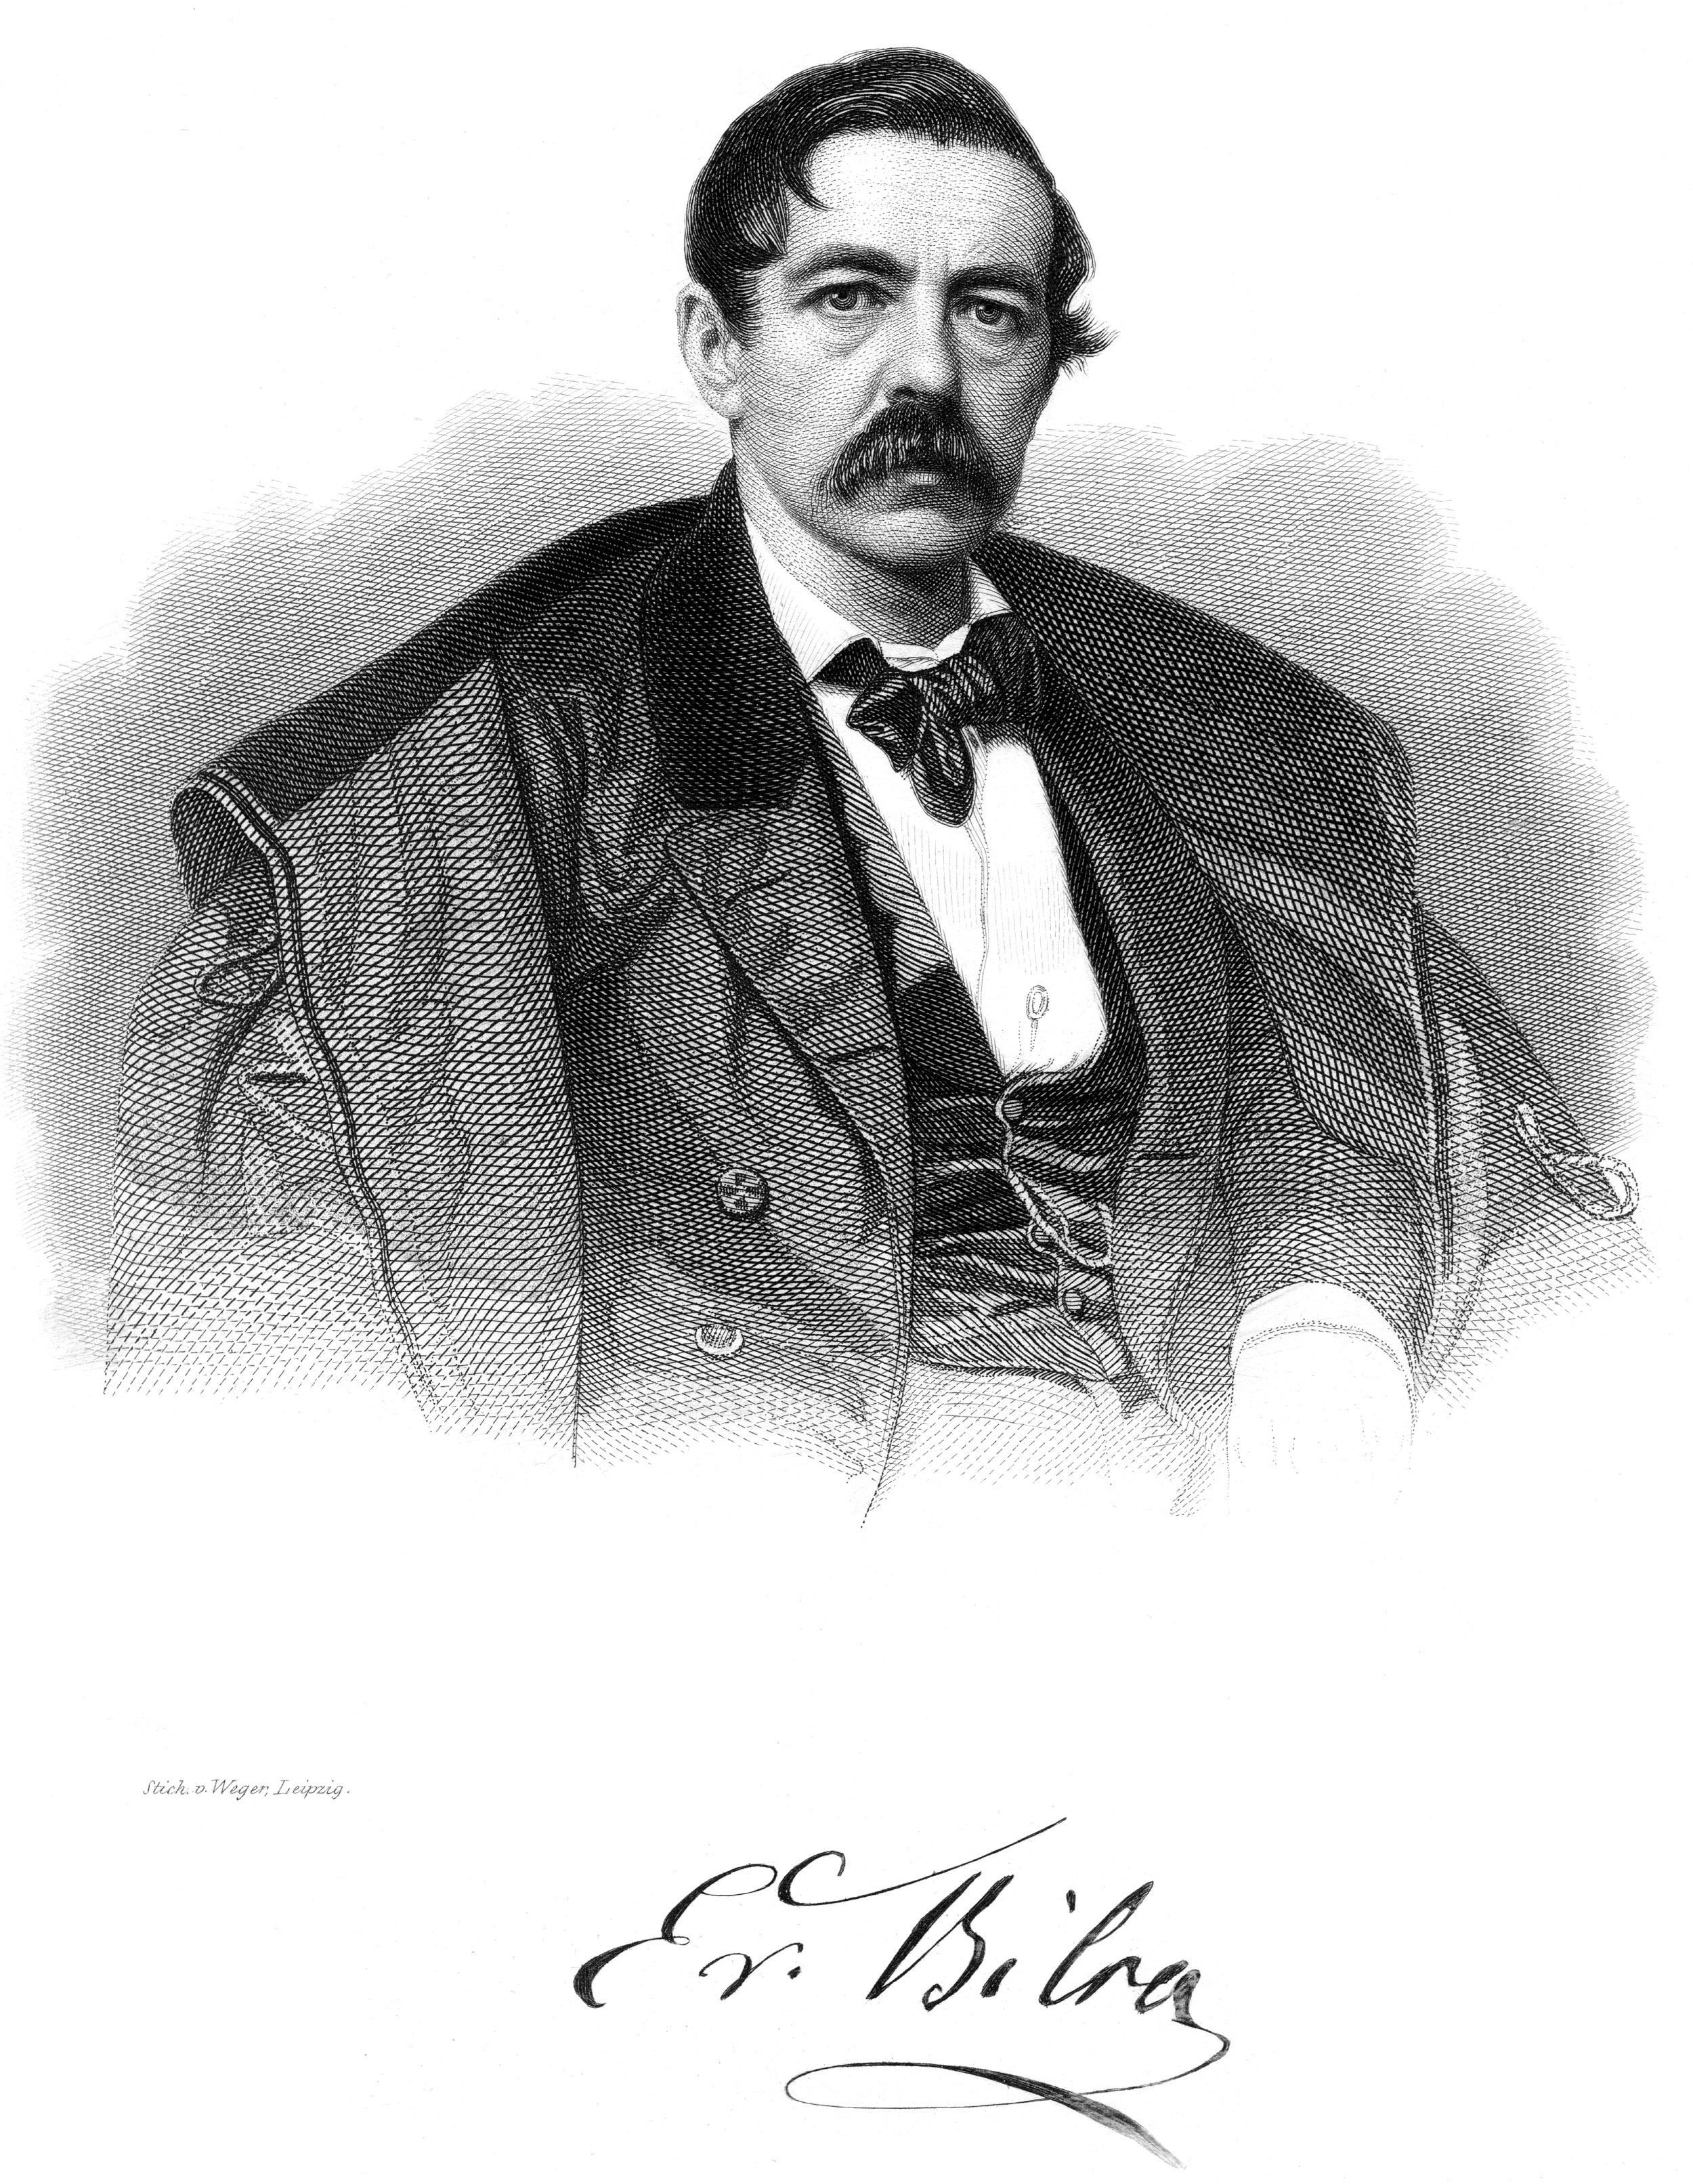 Engraving of Ernst von Bibra by August Weger ca. 1888